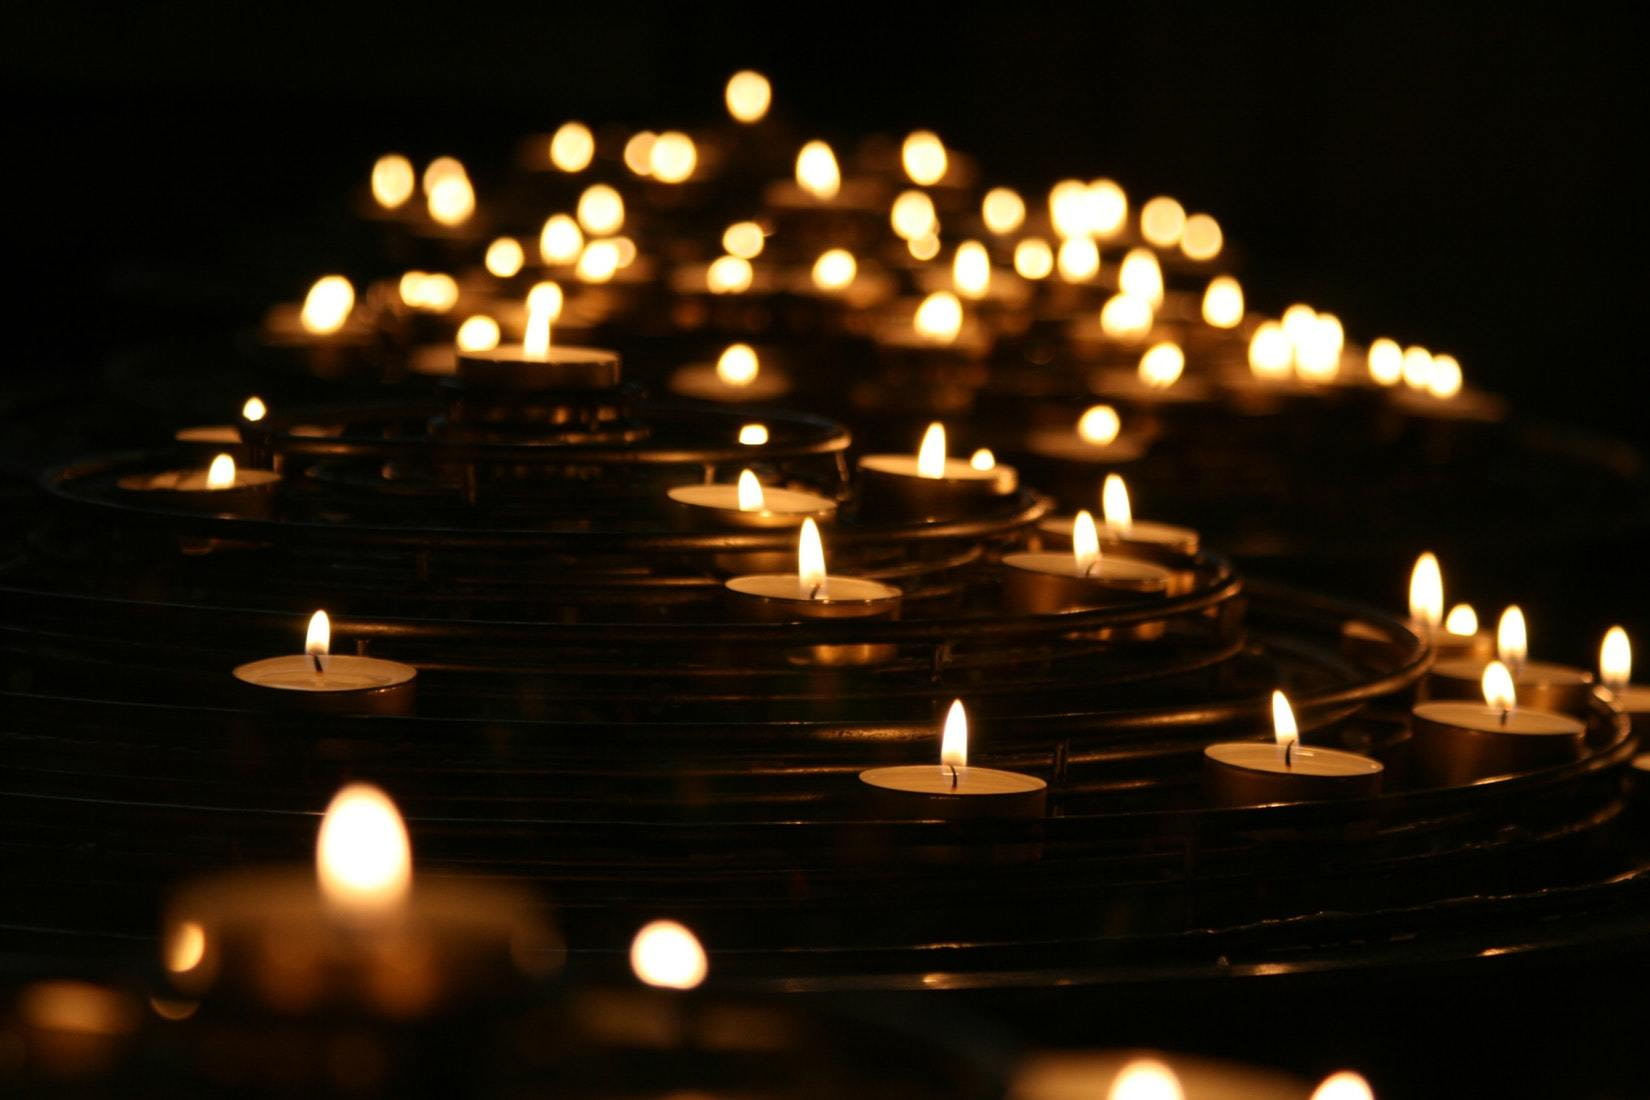 row of small candles in the dark used to signify grief and loss